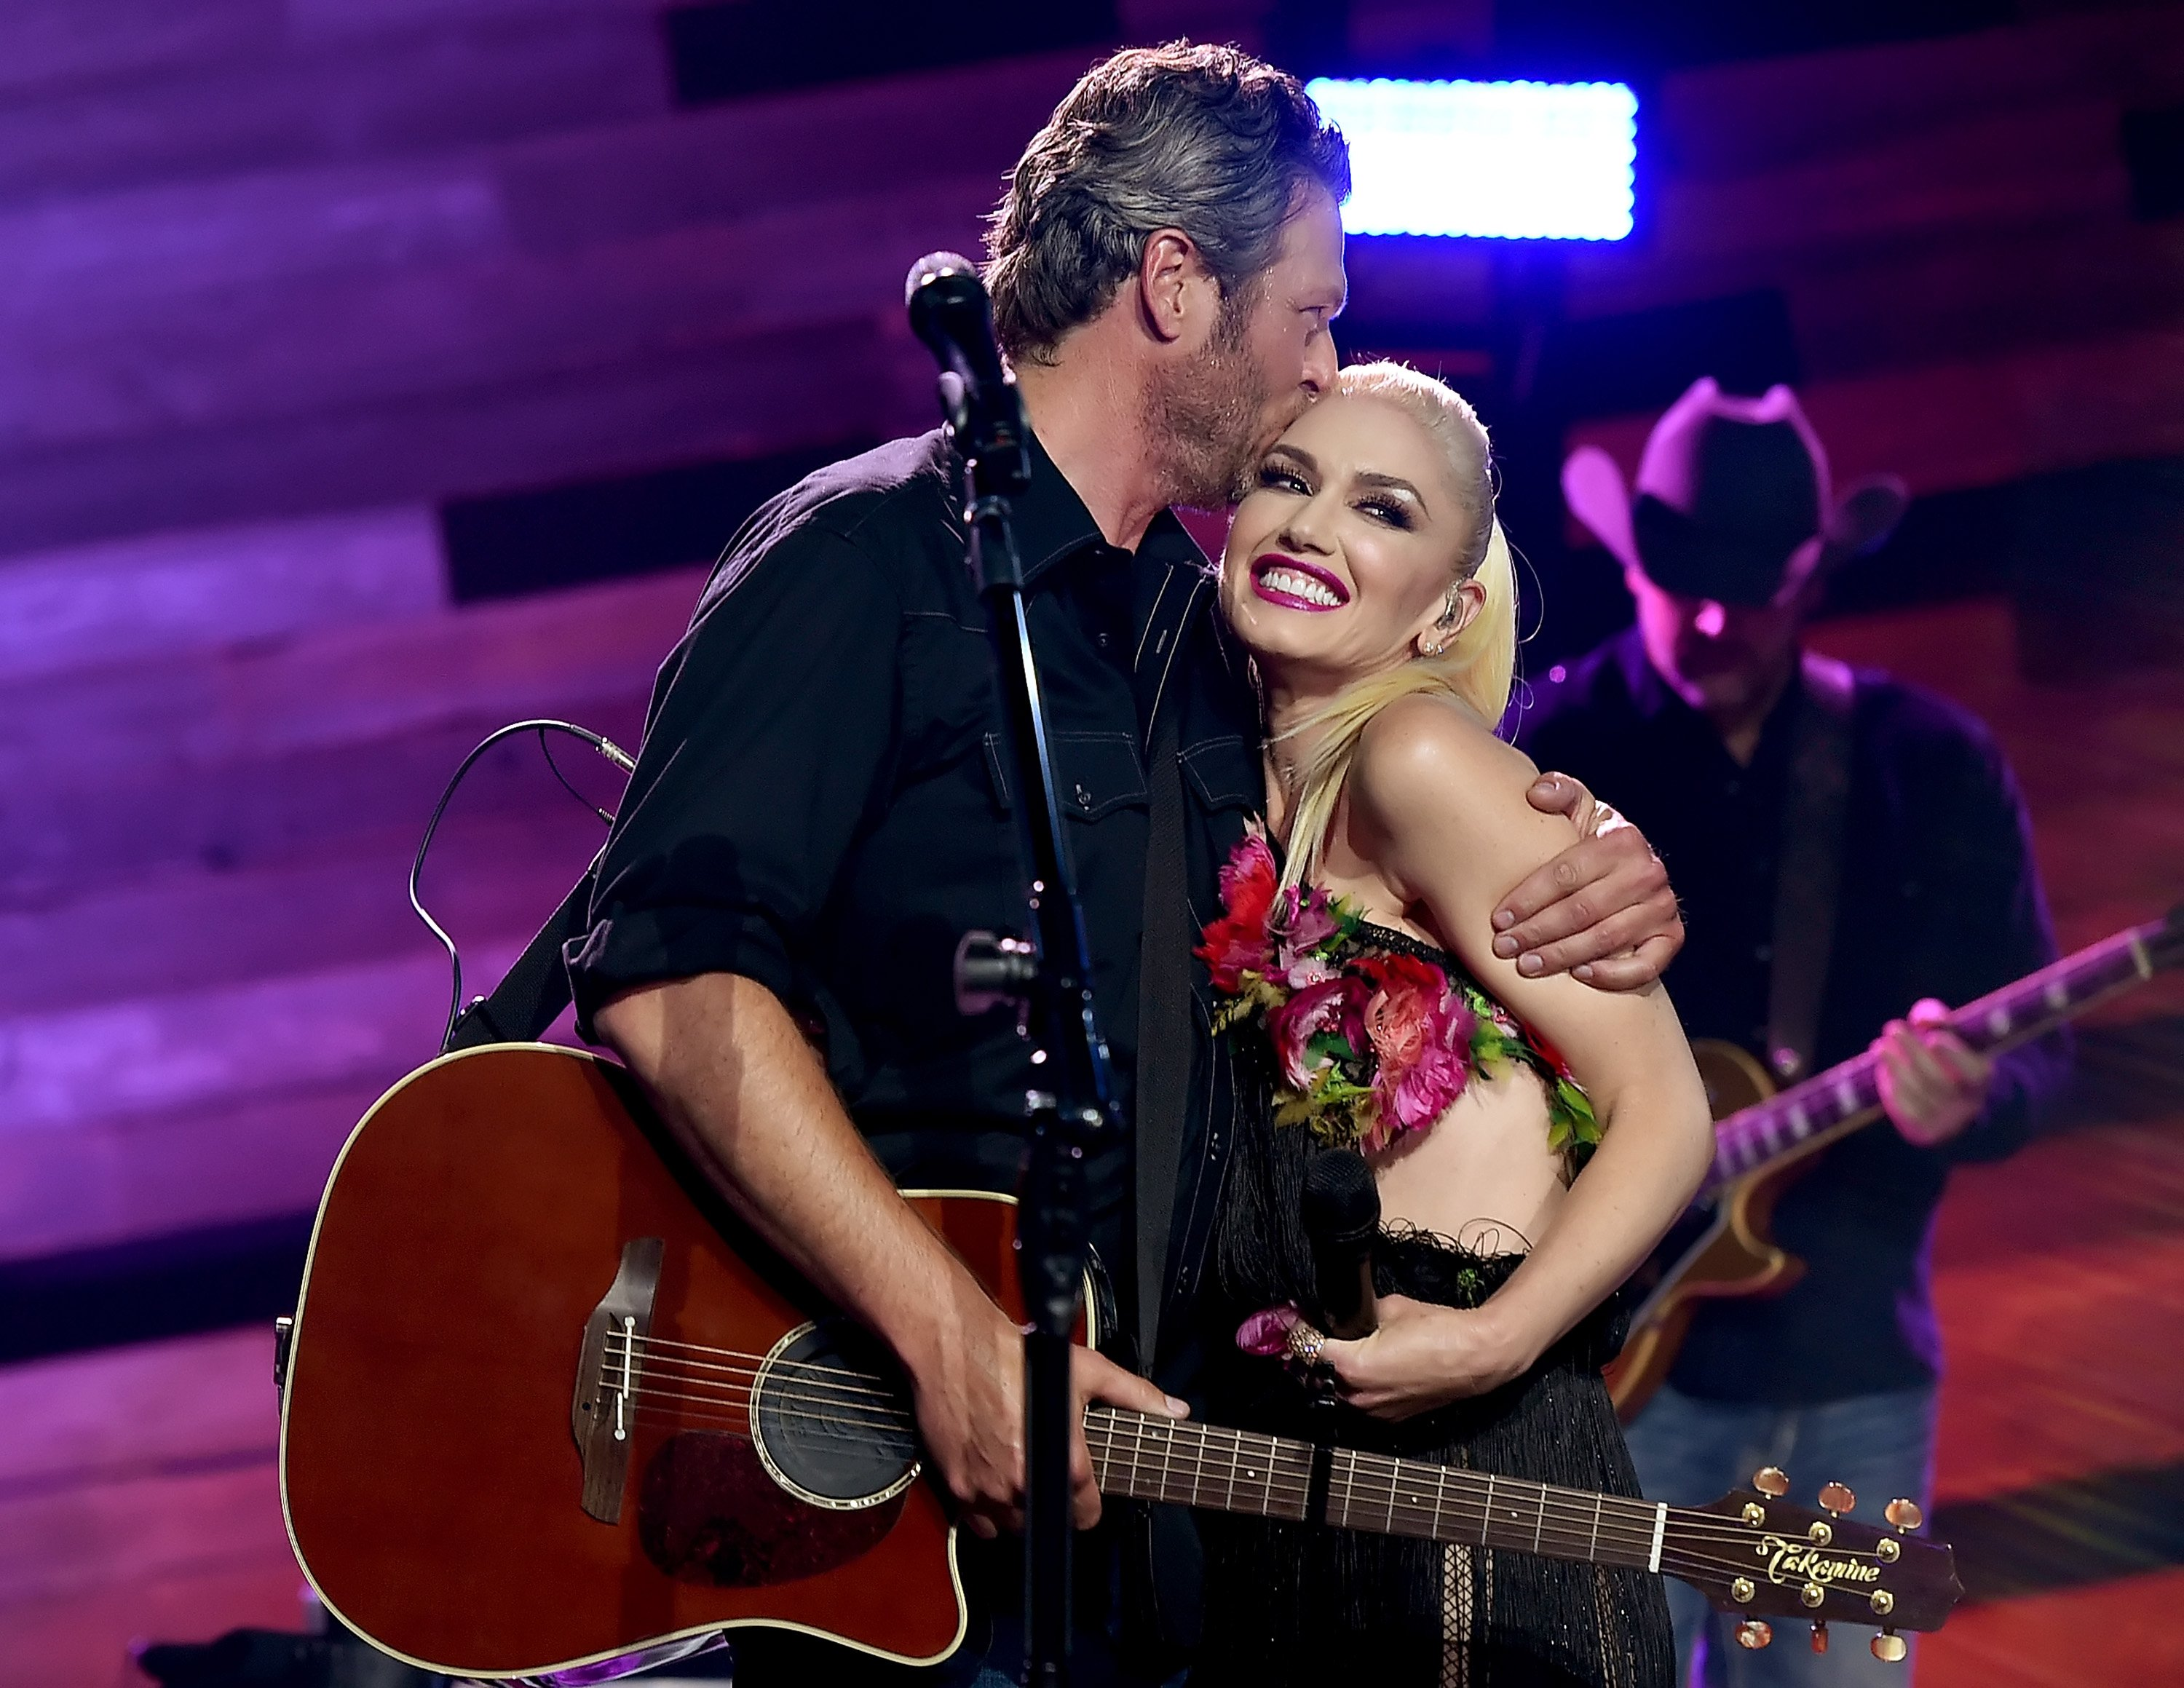 """The Voice"" coaches and real-life couple Blake Shelton and Gwen Stefani during their 2016 performance at the iHeart Radio stage 